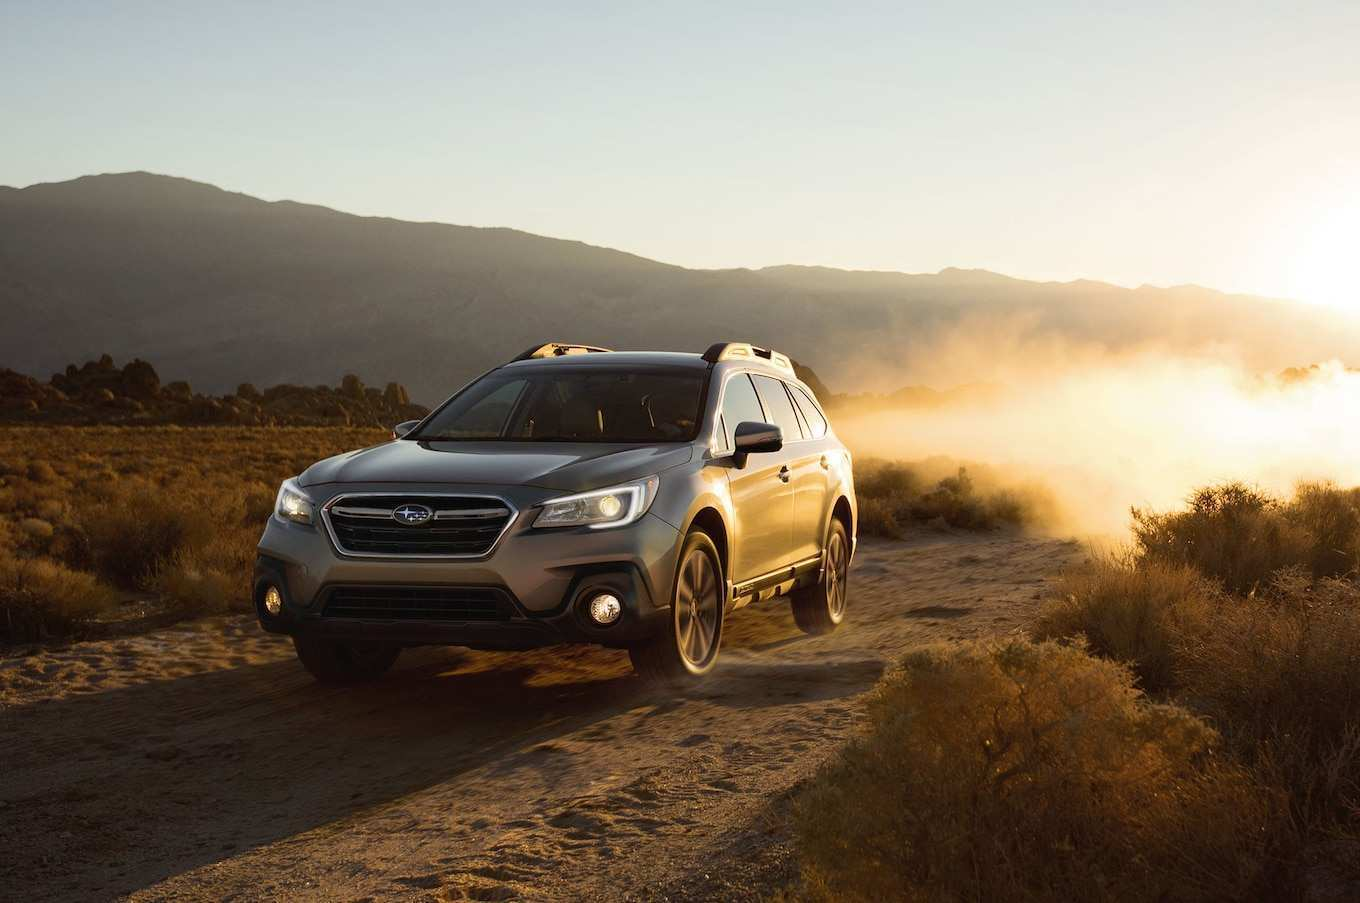 45 All New 2019 Subaru Outback Next Generation Images by 2019 Subaru Outback Next Generation